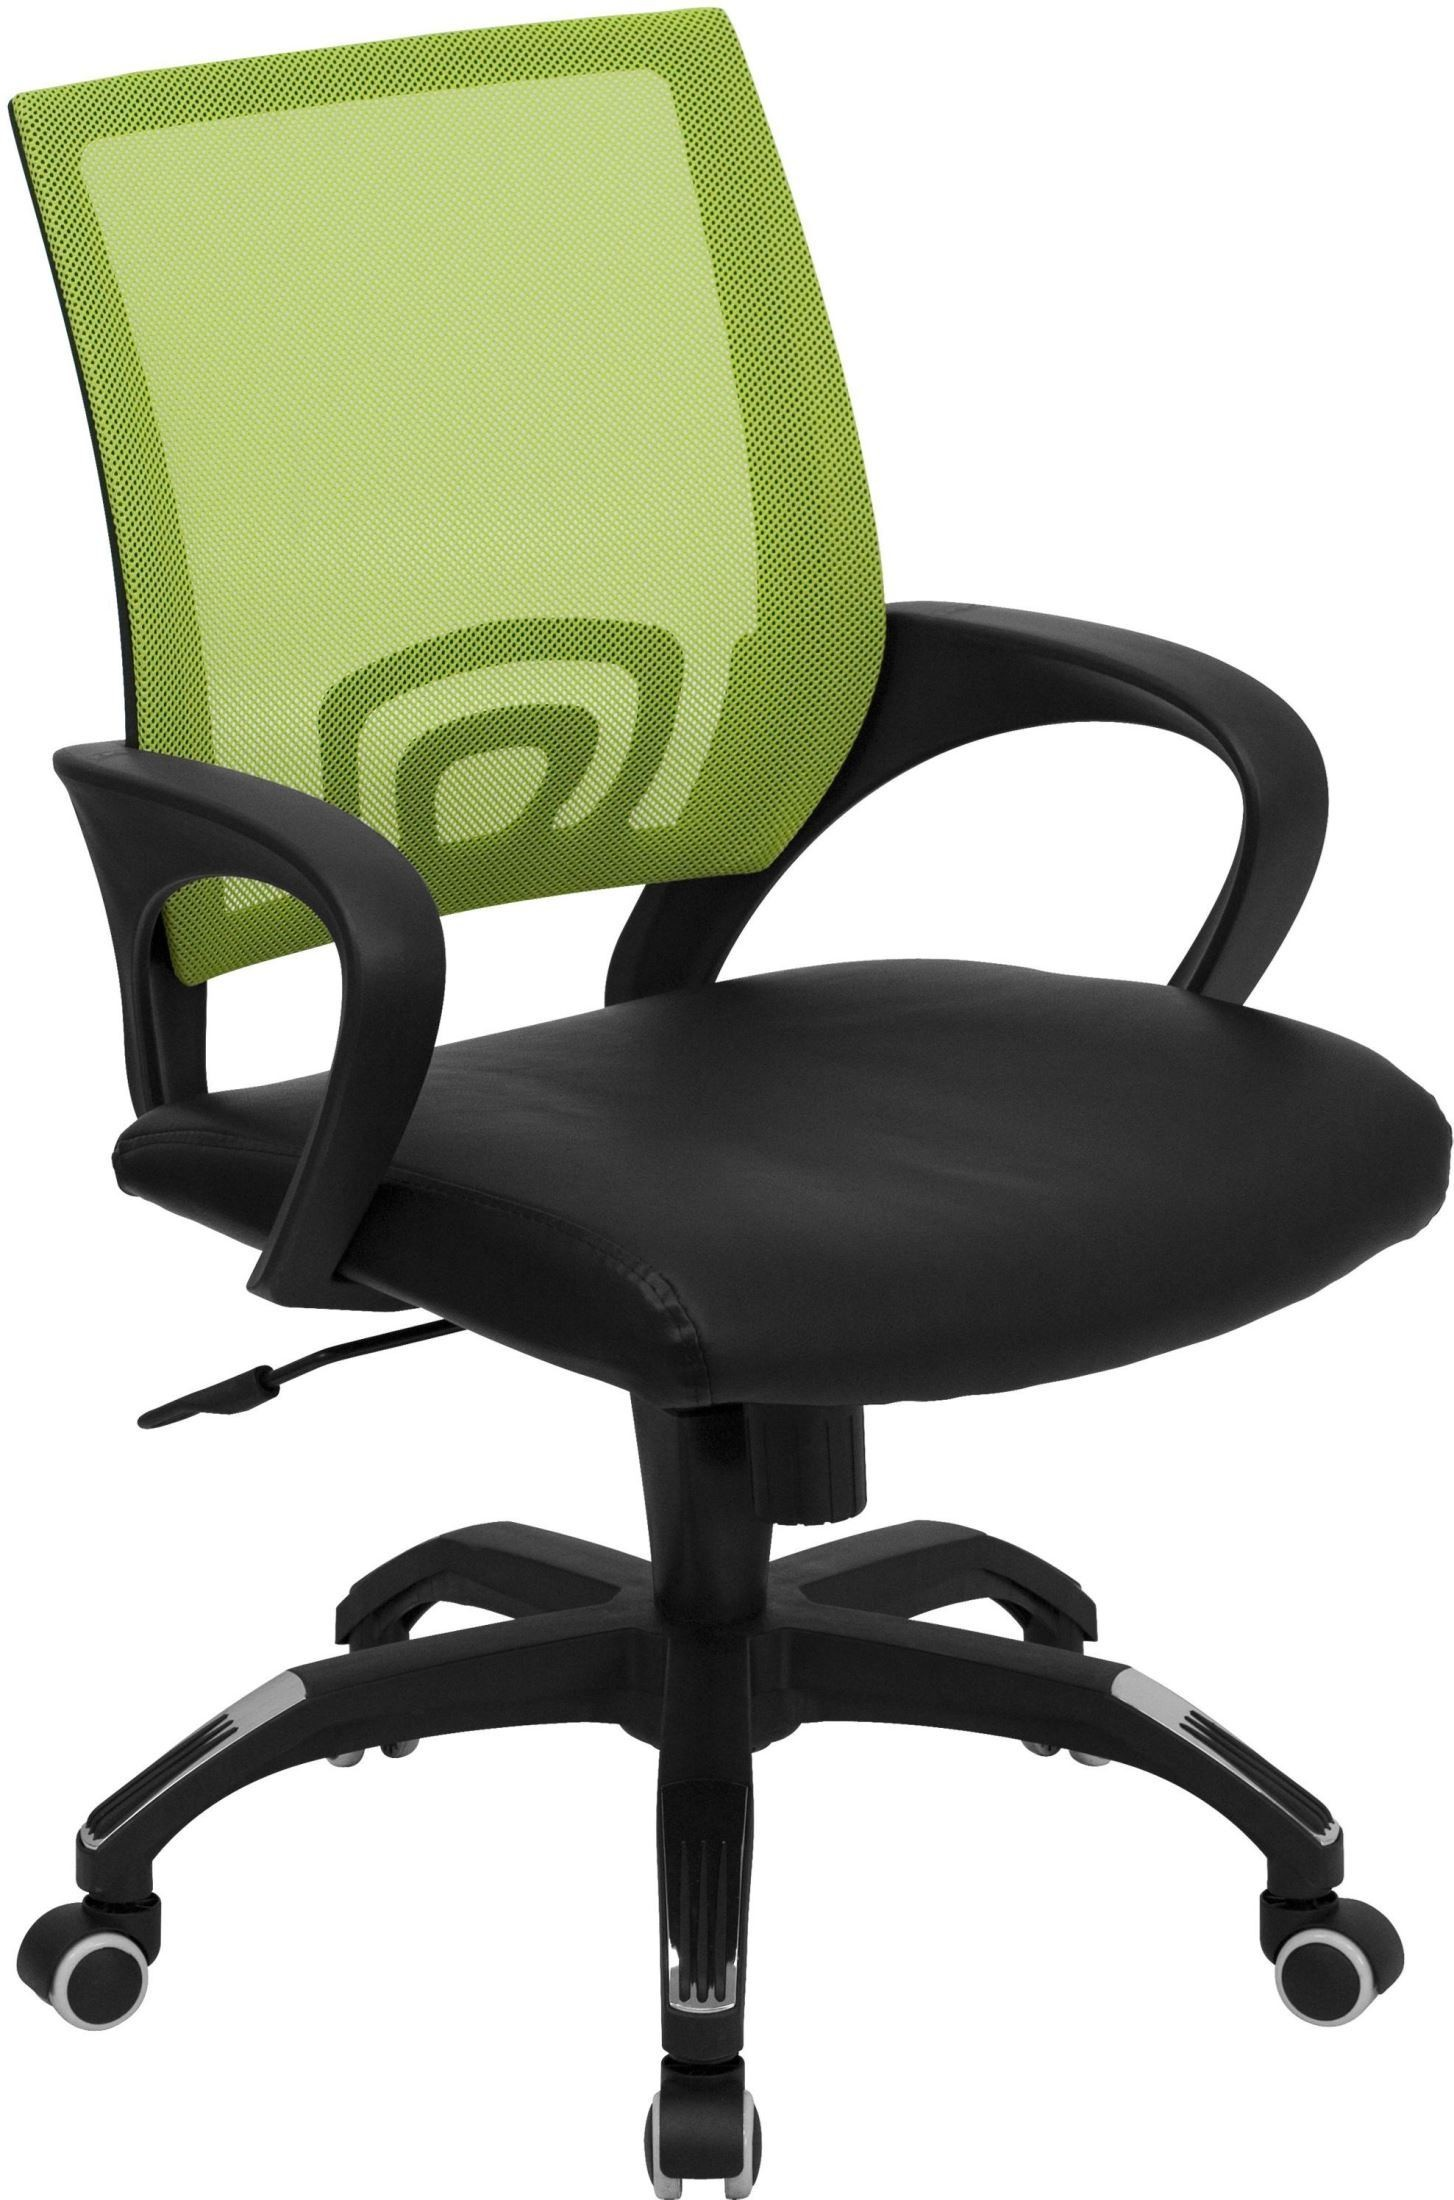 Green Computer Chair Mid Back Green Computer Chair With Black Seat Cp B176a01